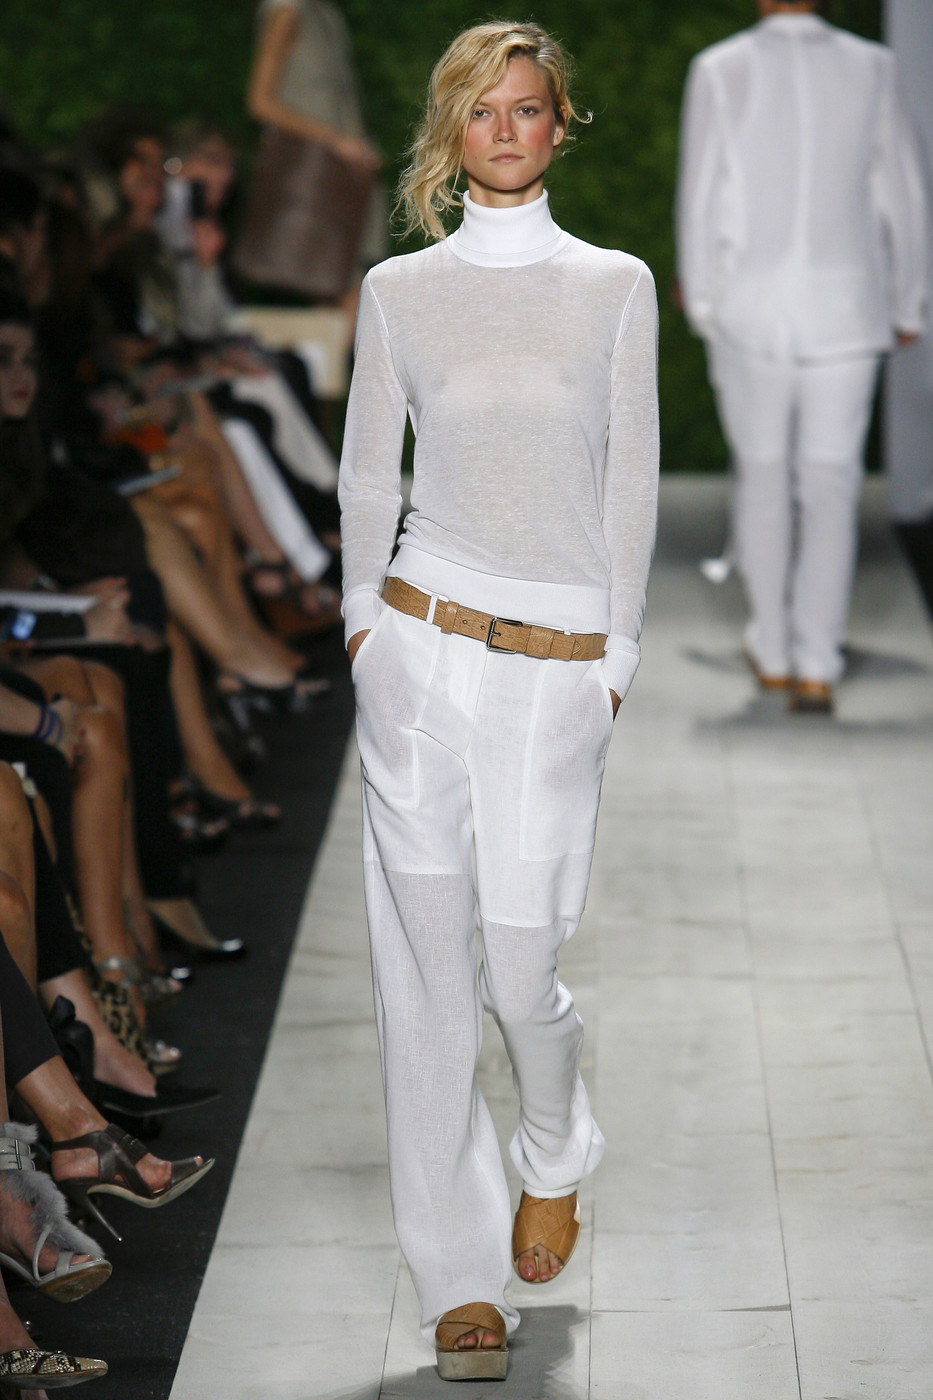 via fashioned by love | Michael Kors Spring/Summer 2011 White